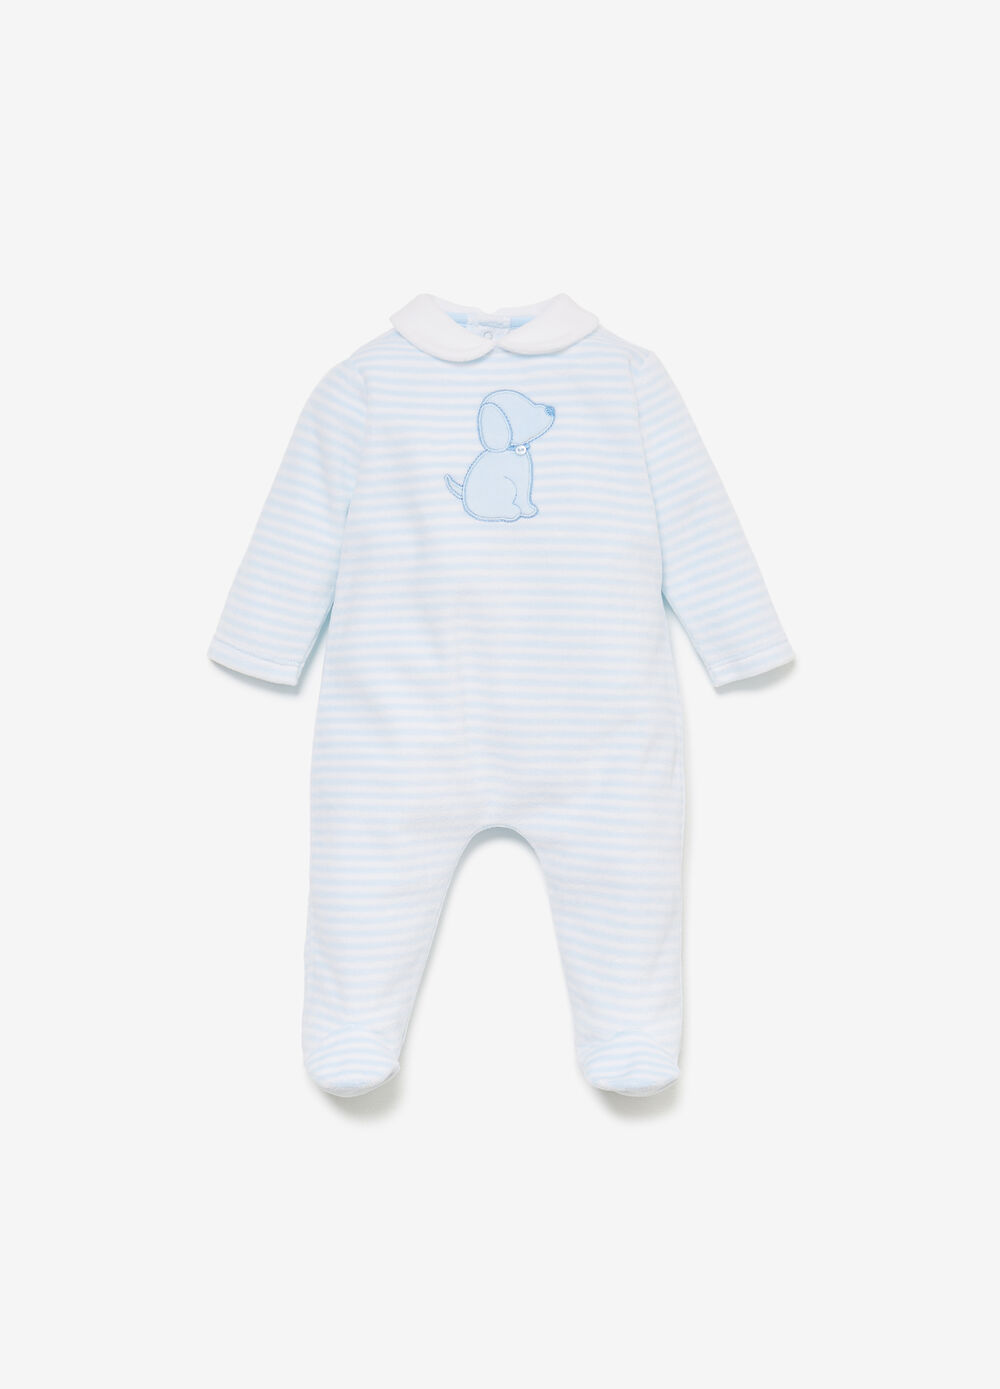 Striped romper suit with puppy patch